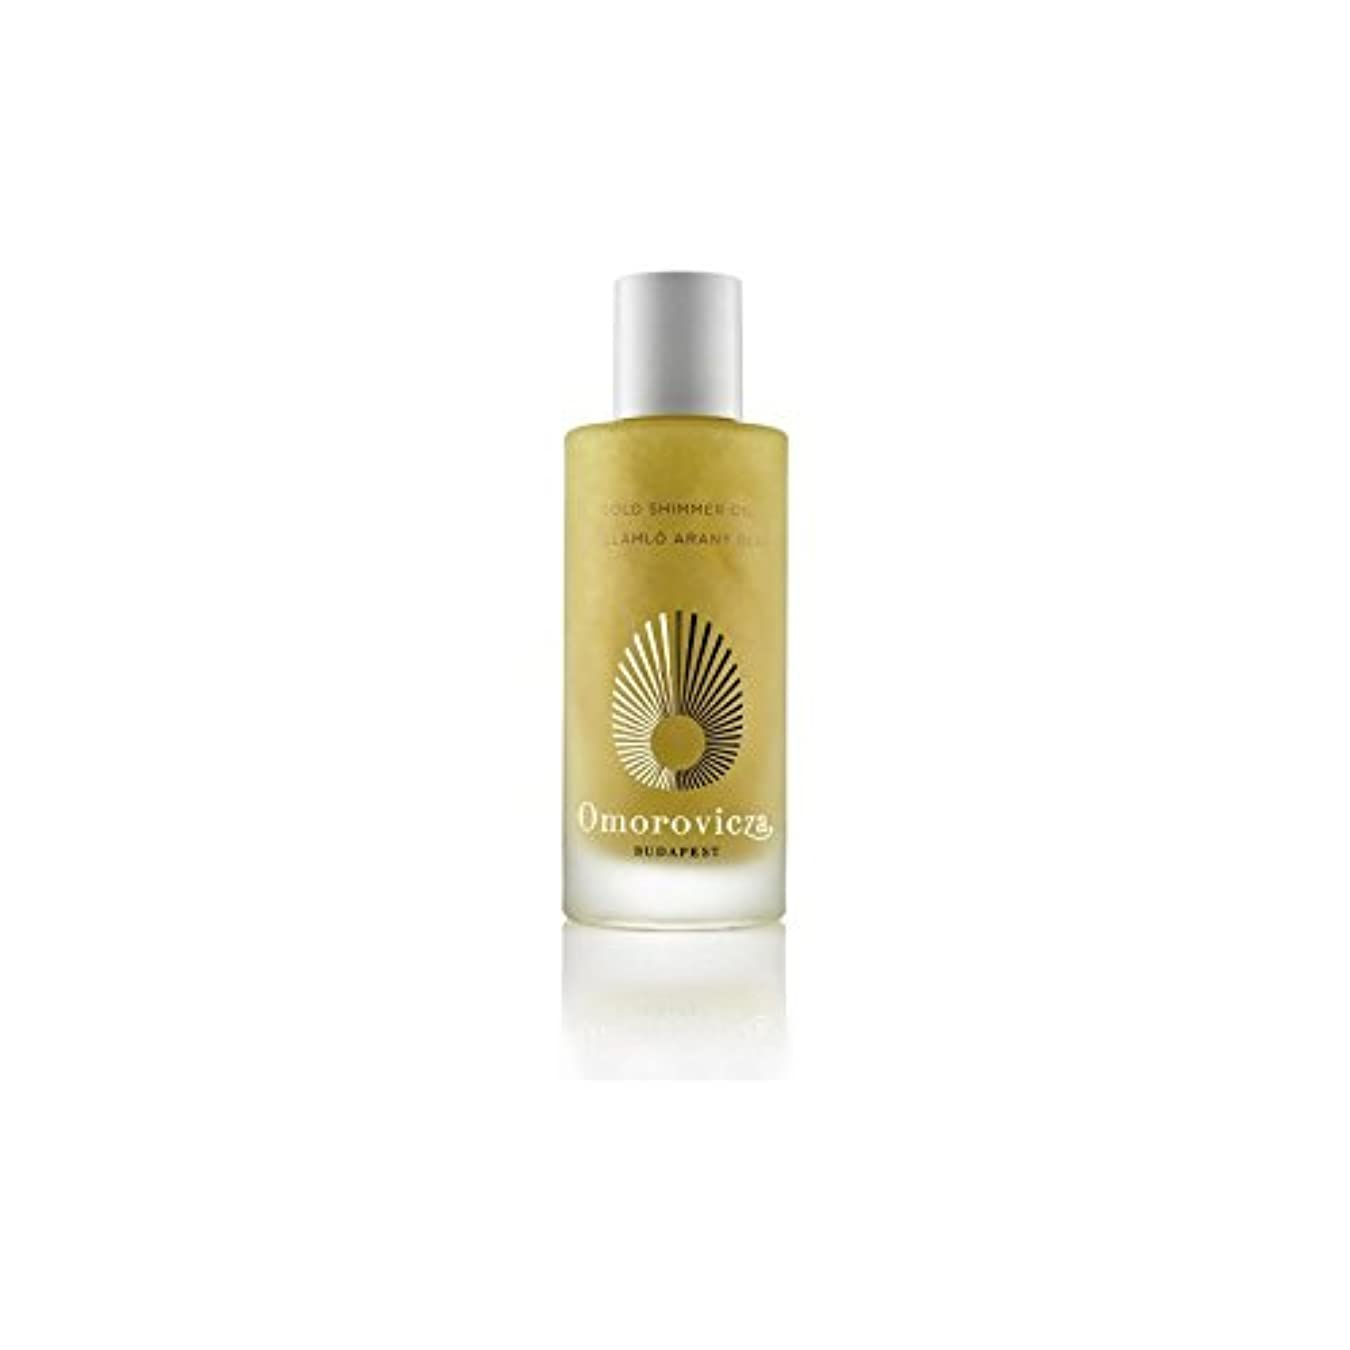 Omorovicza Gold Shimmer Oil (100ml) (Pack of 6) - ゴールドシマーオイル(100ミリリットル) x6 [並行輸入品]